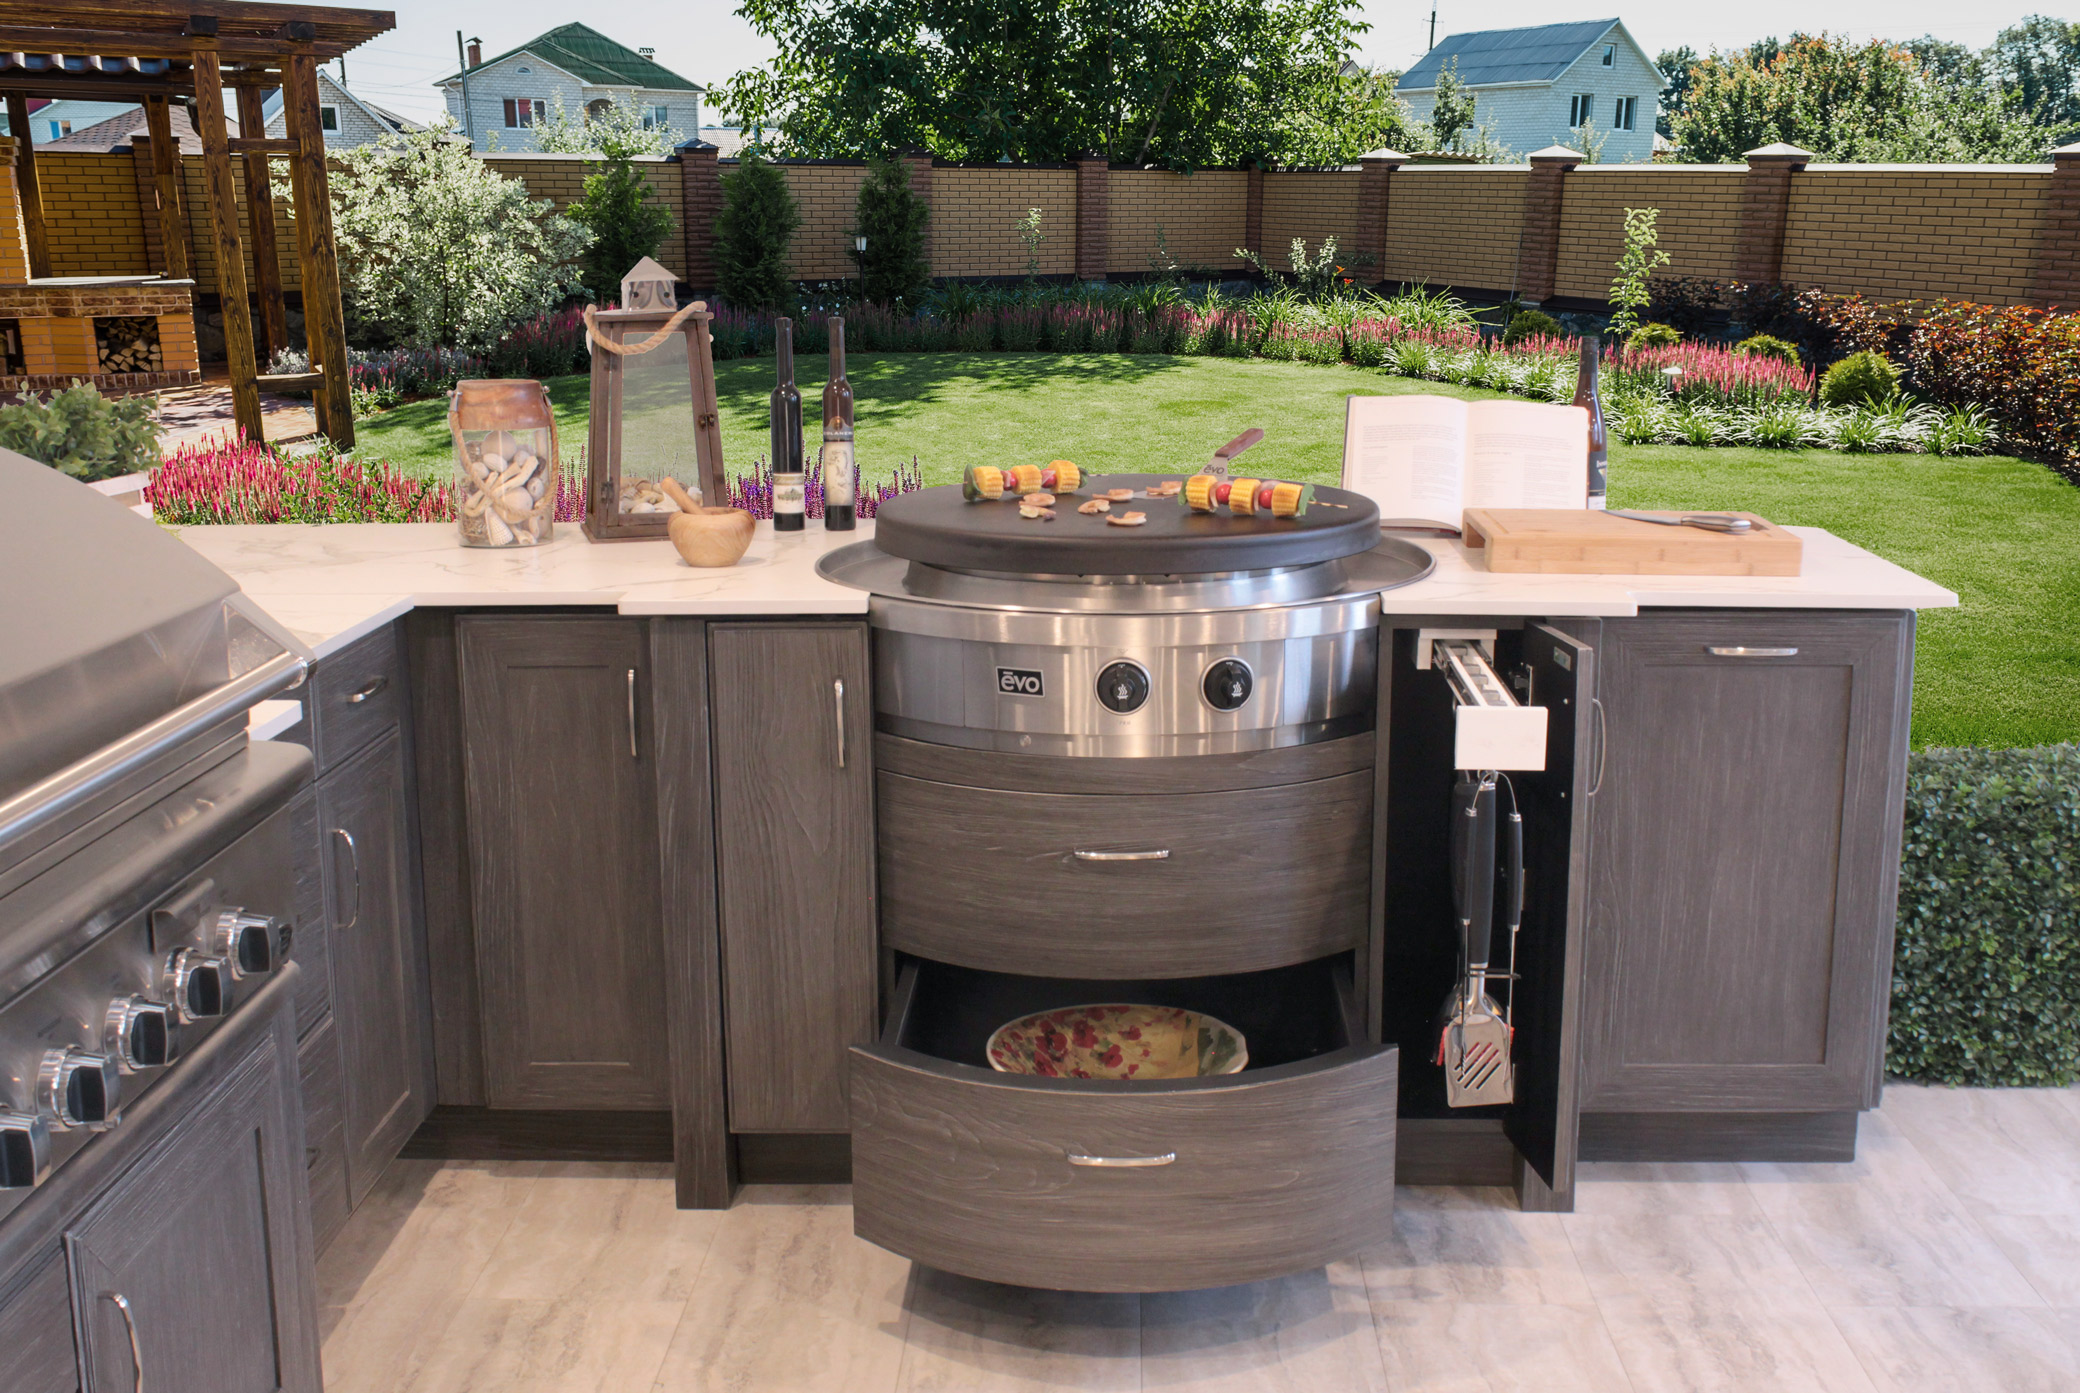 Outdoor Cabinets Of Distinction Discover The Beauty Of Naturekast Founded in 2001, evo, inc. outdoor cabinets of distinction